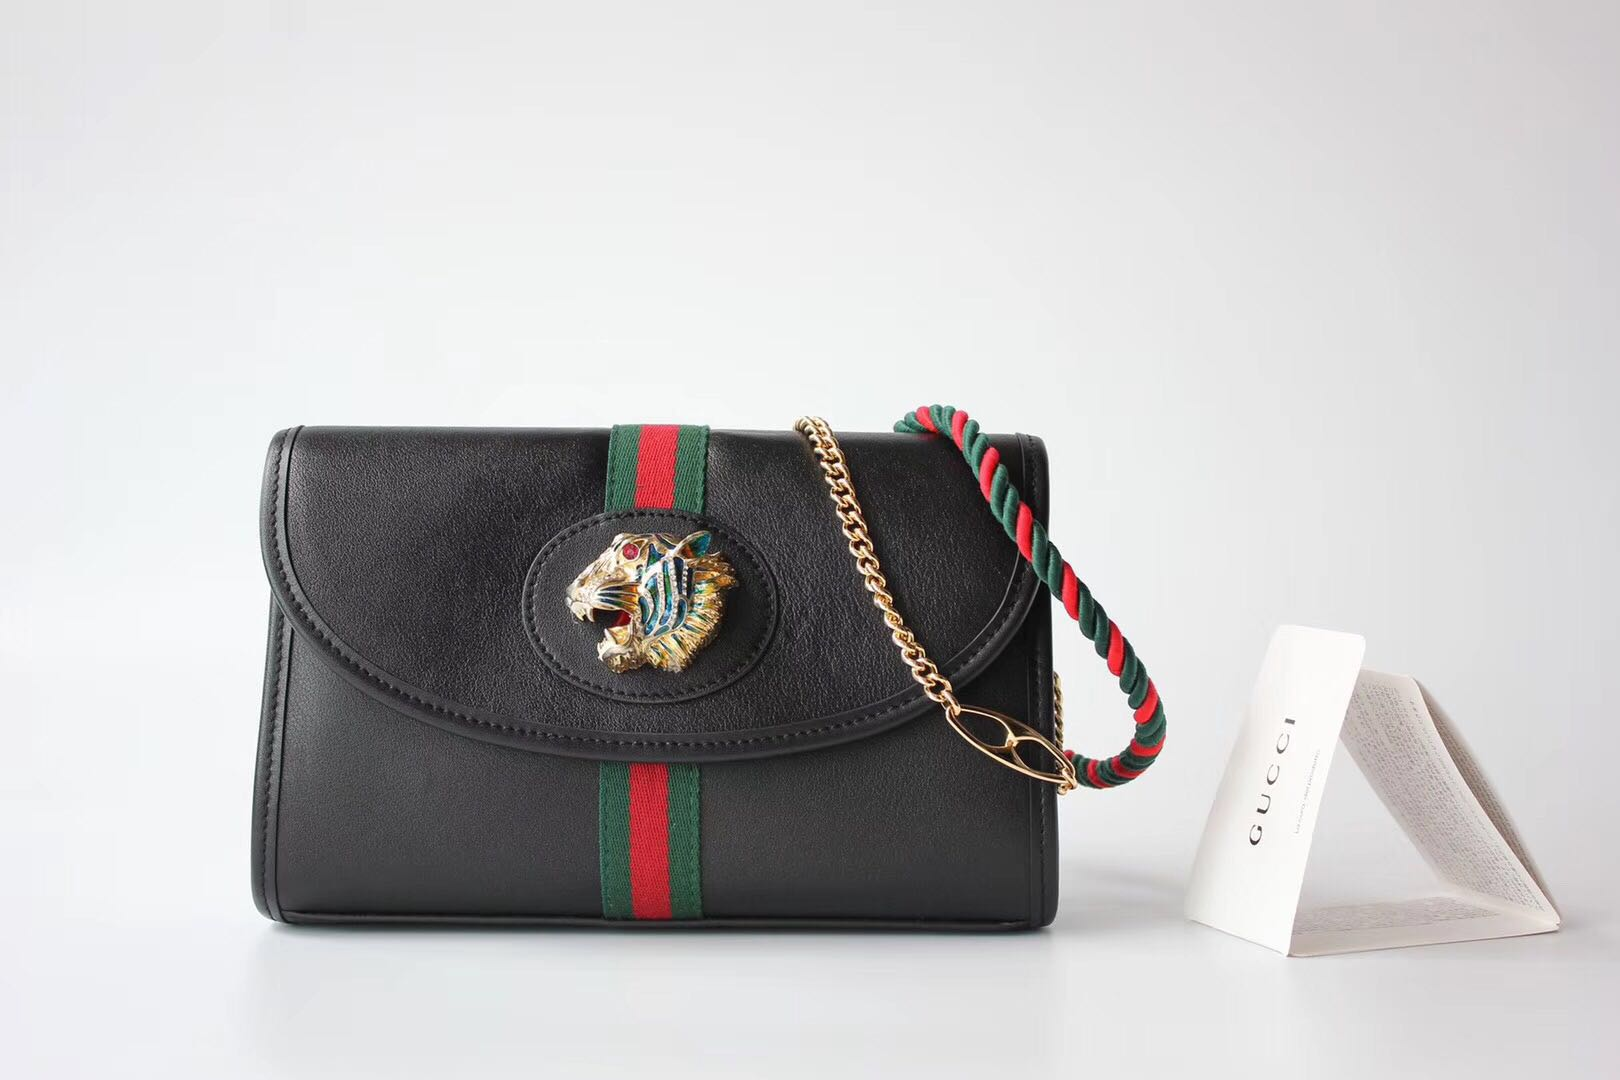 Gucci GG Leather Shoulder Bag 570145 black